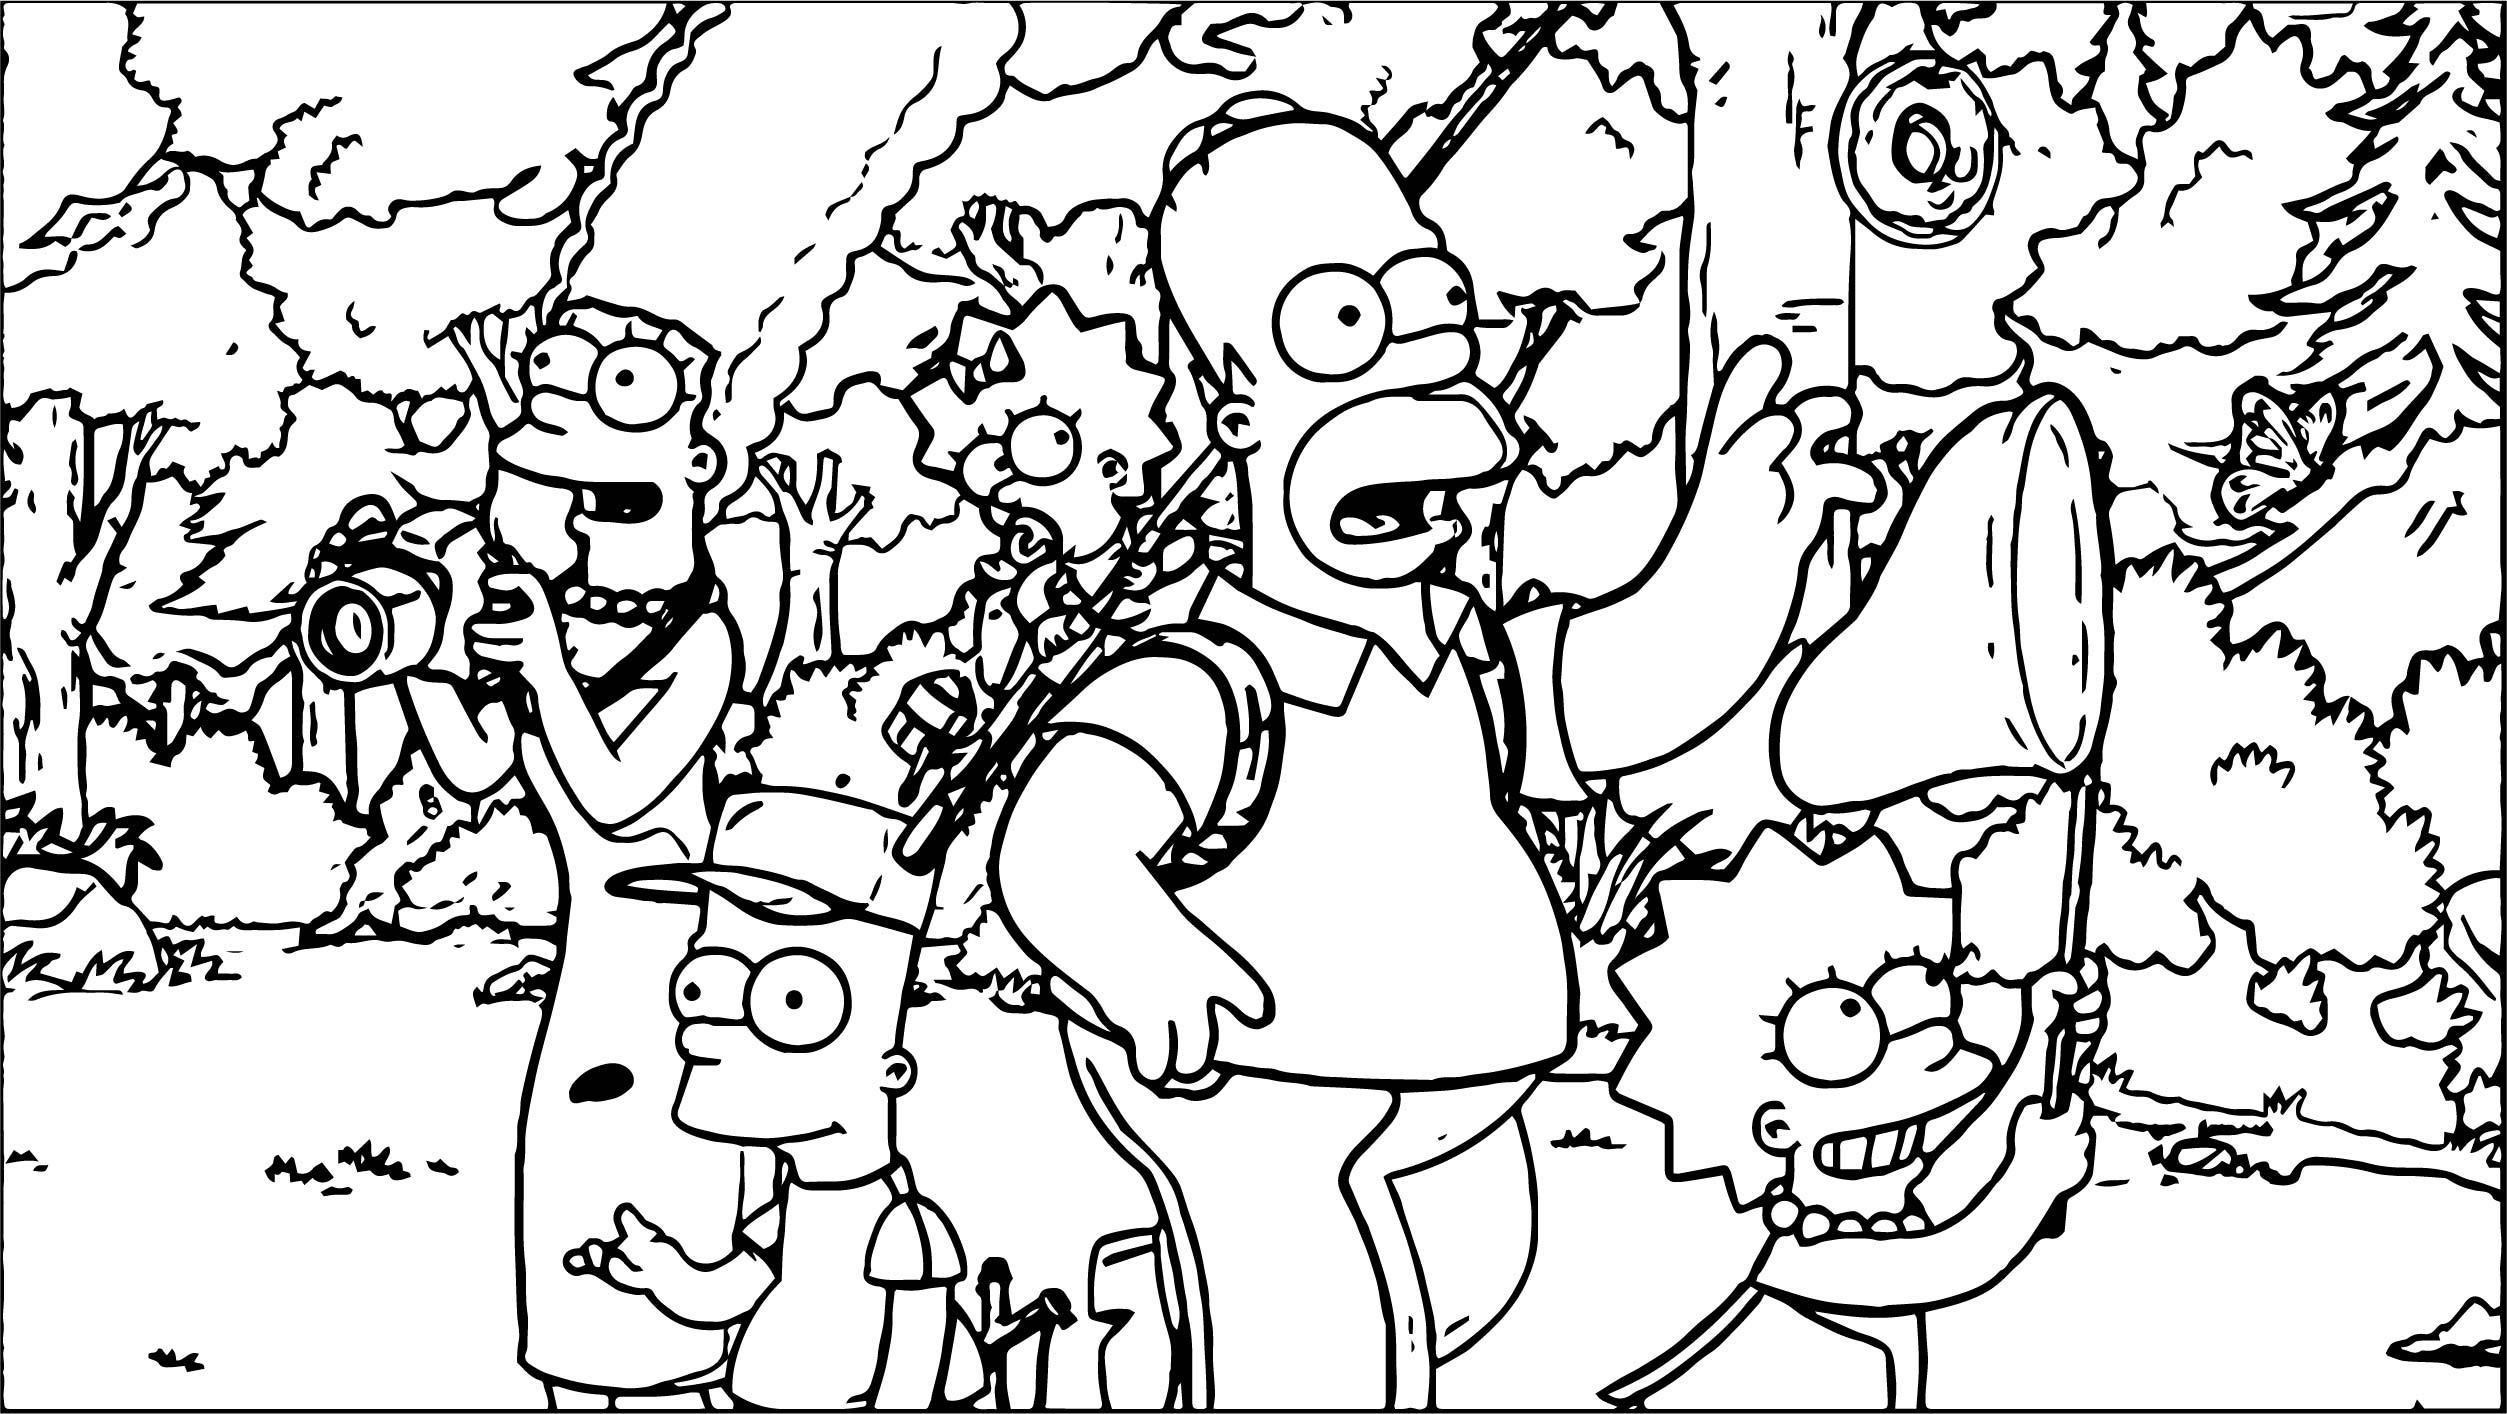 The Simpsons Coloring Page 002   Wecoloringpage.com